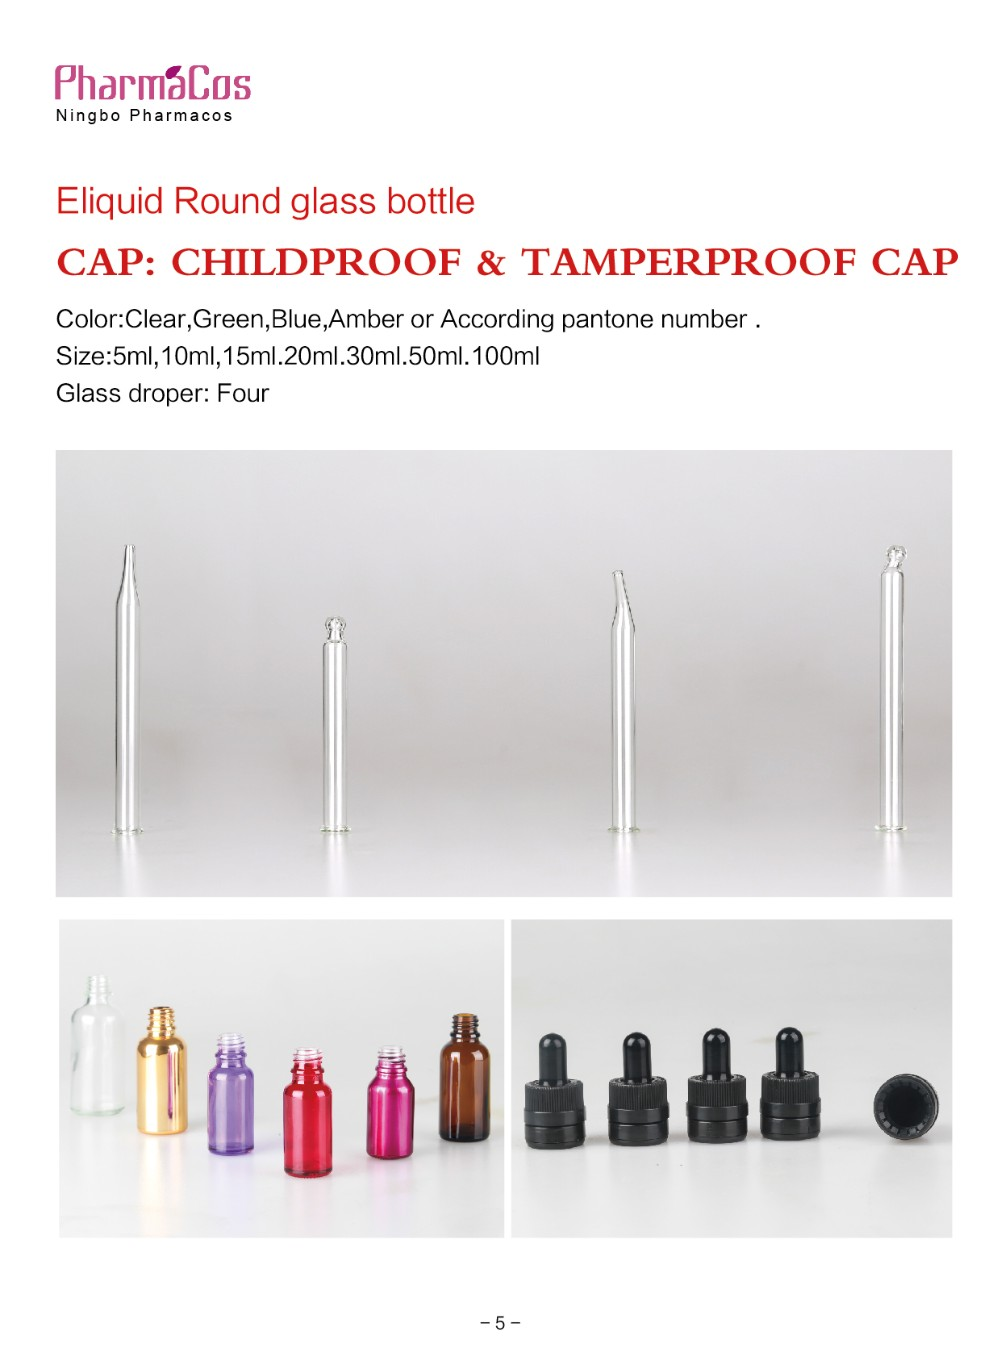 30ml e liquid glass bottle with tamperproof and childproof cap